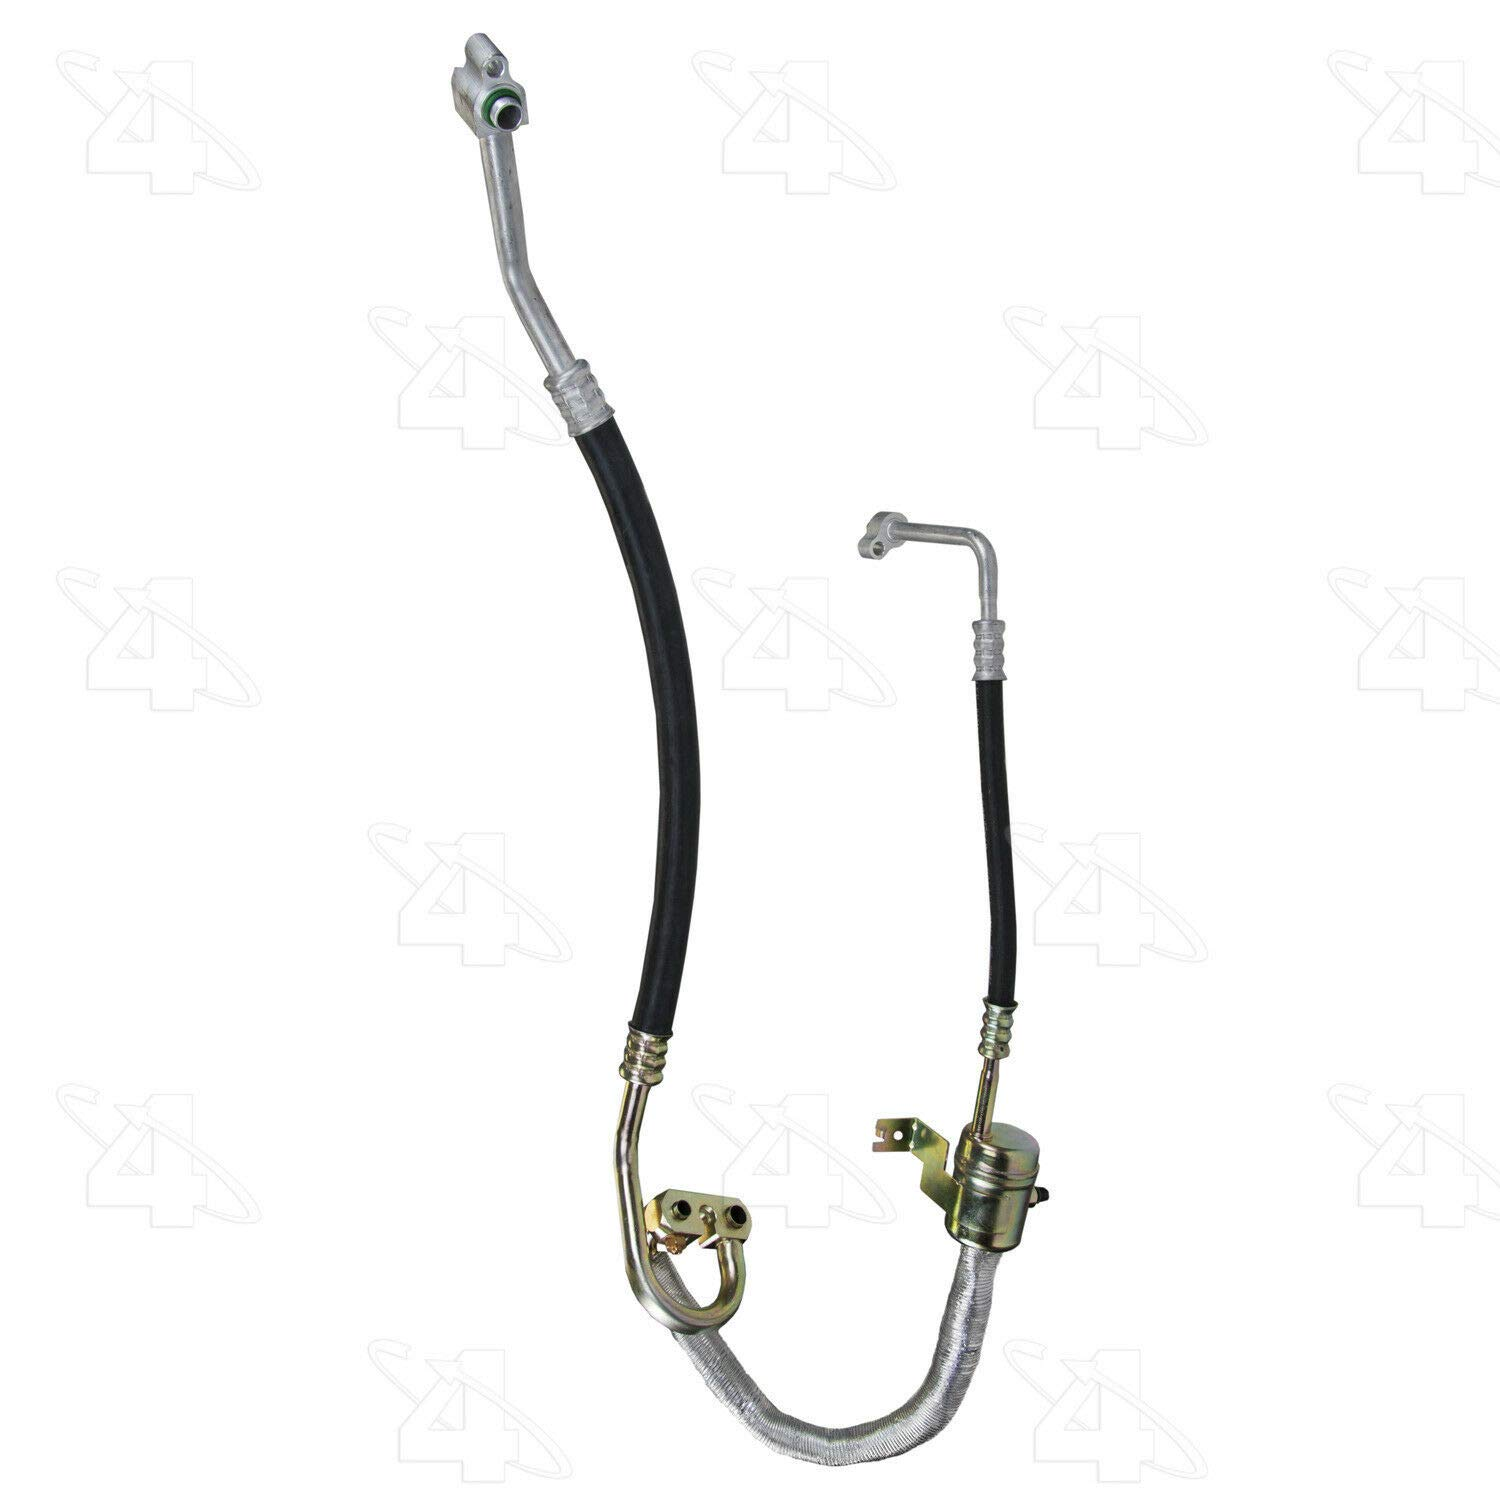 Four Seasons 56288 Discharge and Suction Line Hose Assembly